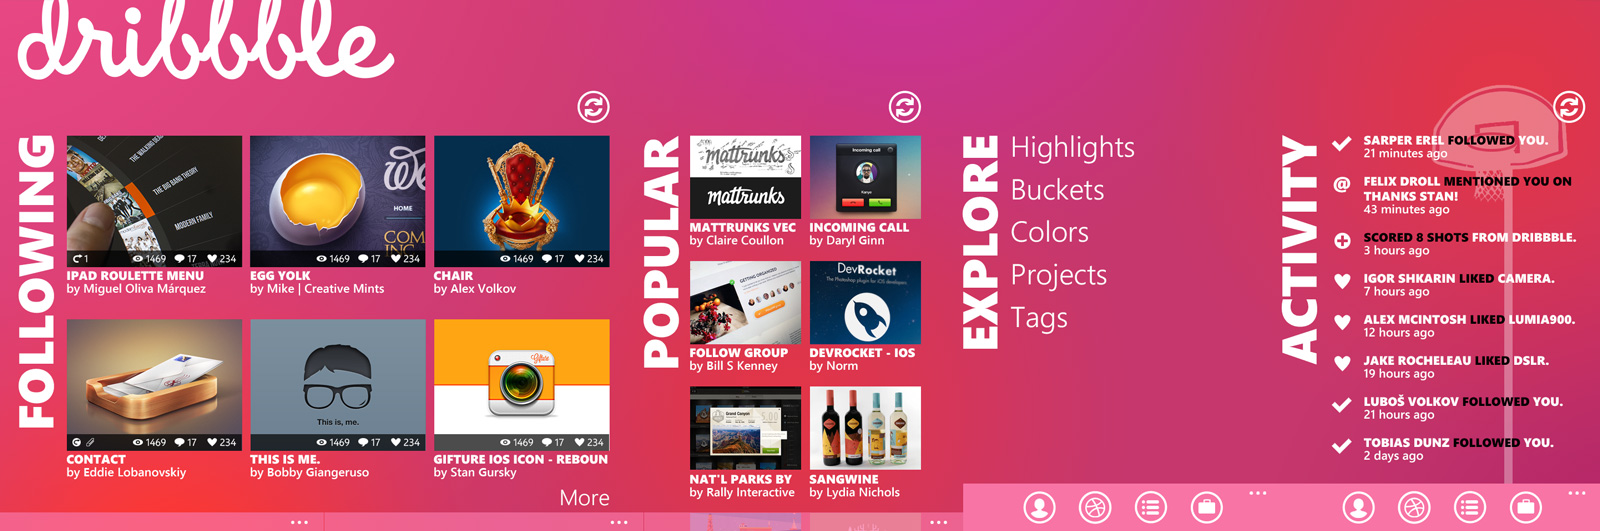 Dribbble for Windows Phone 7